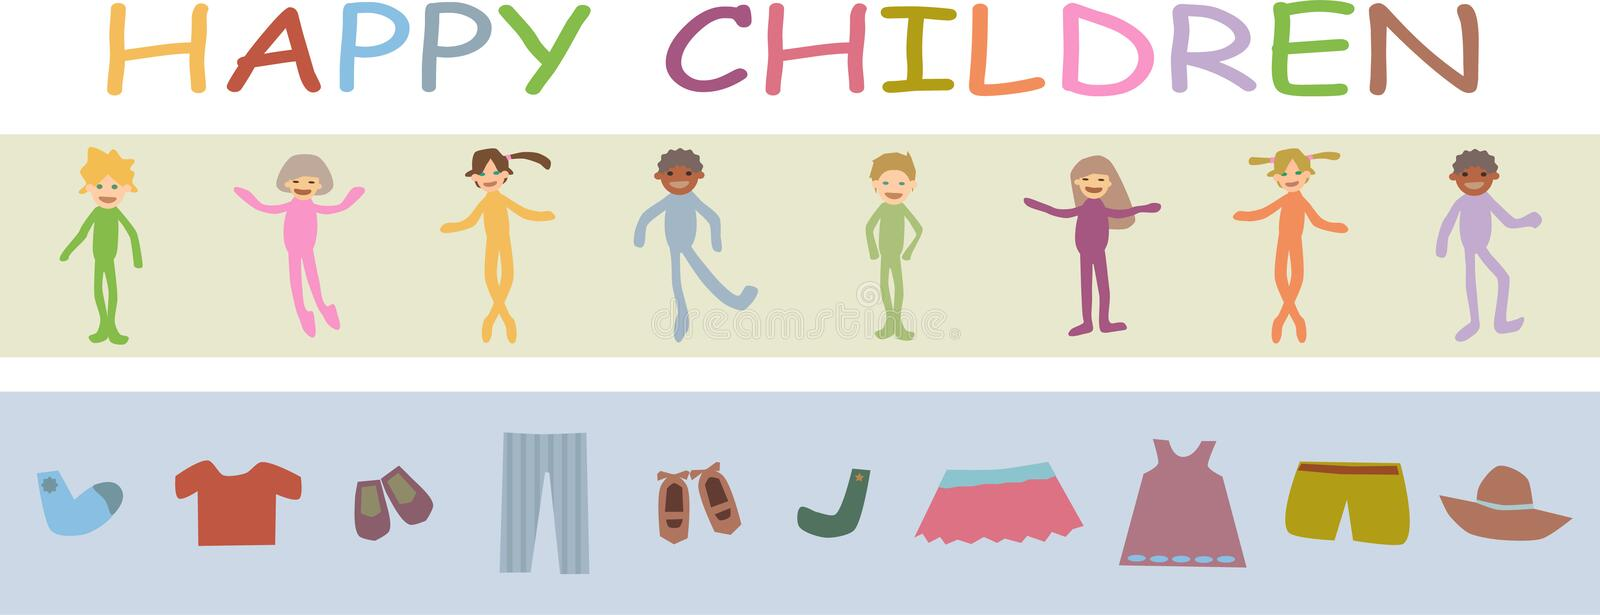 Download Happy children stock vector. Image of promotion, ornament - 8012734